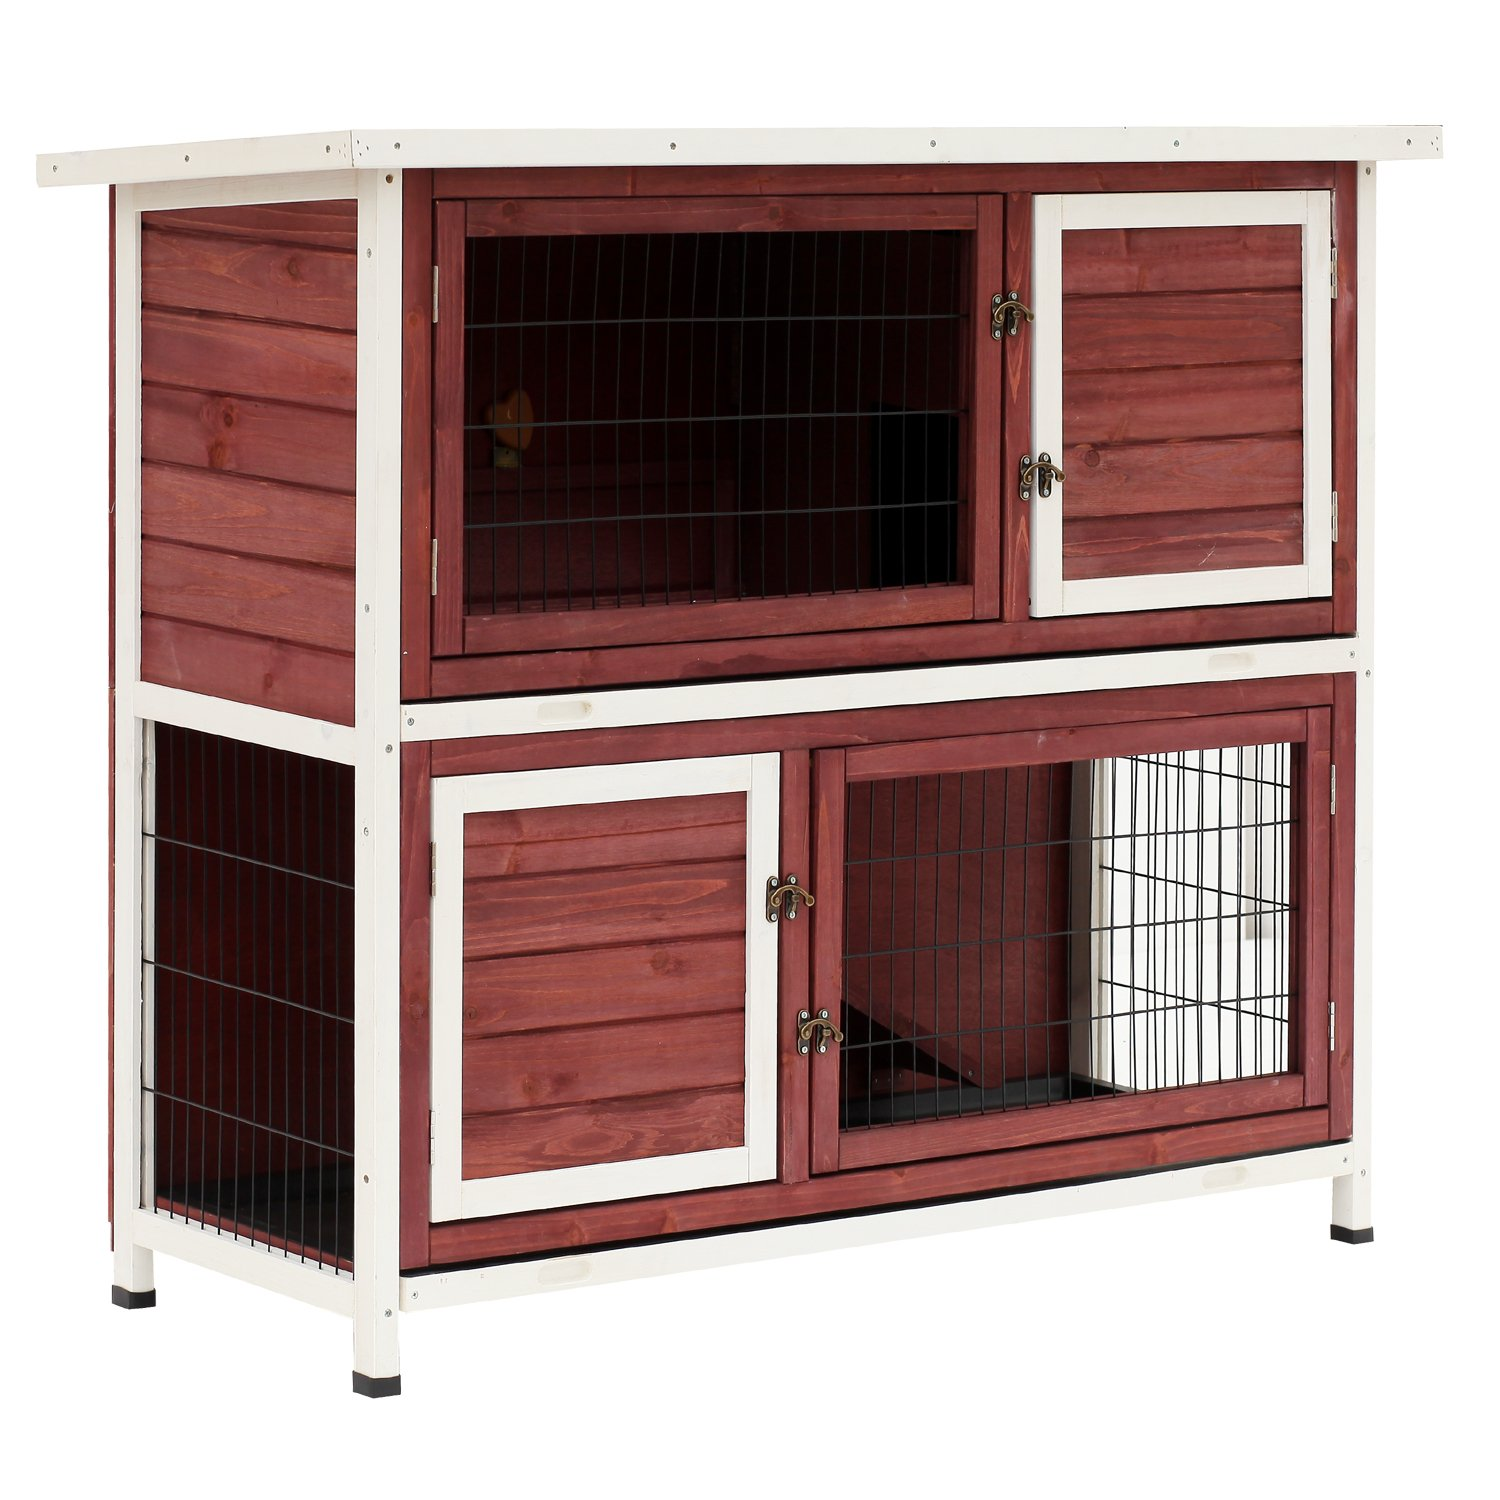 PawHut 48'' 2-Story Elevated Stacked Wooden Rabbit Hutch Small Animal Habitat with Ramp by PawHut